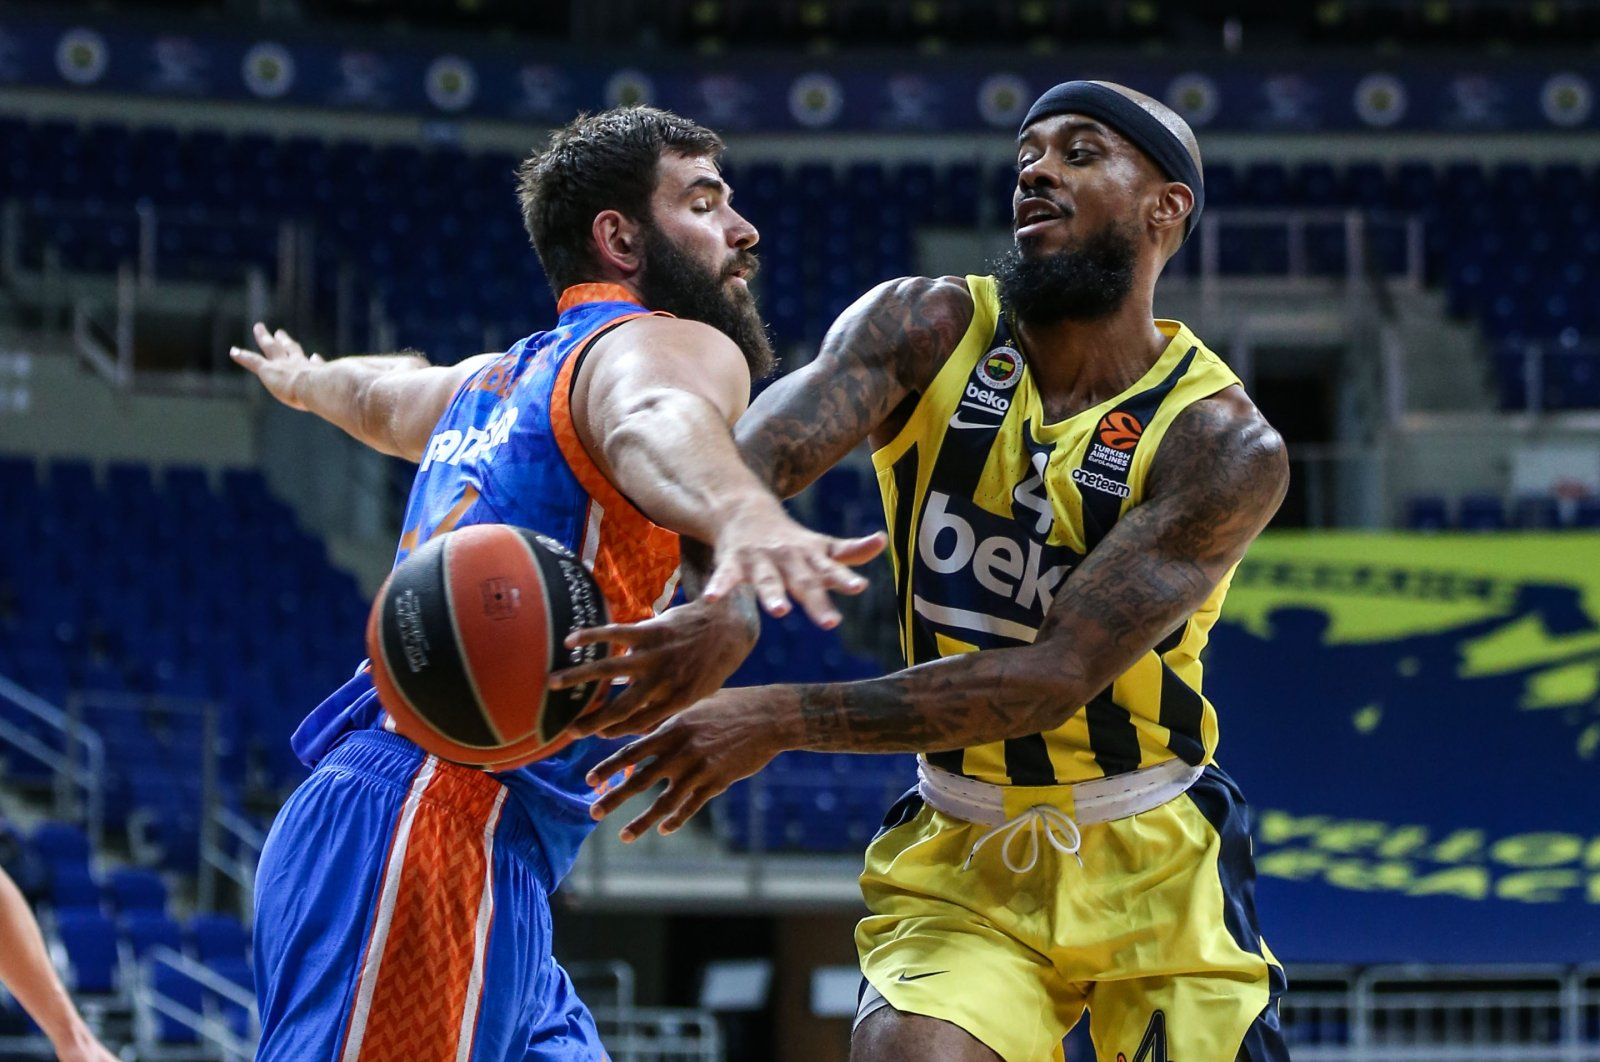 Valencia's Bojan Dubljevic (L) defending against Fenerbahçe's Lorenzo Brown during a game in Istanbul, Turkey, Nov. 27, 2020. (AA Photo)